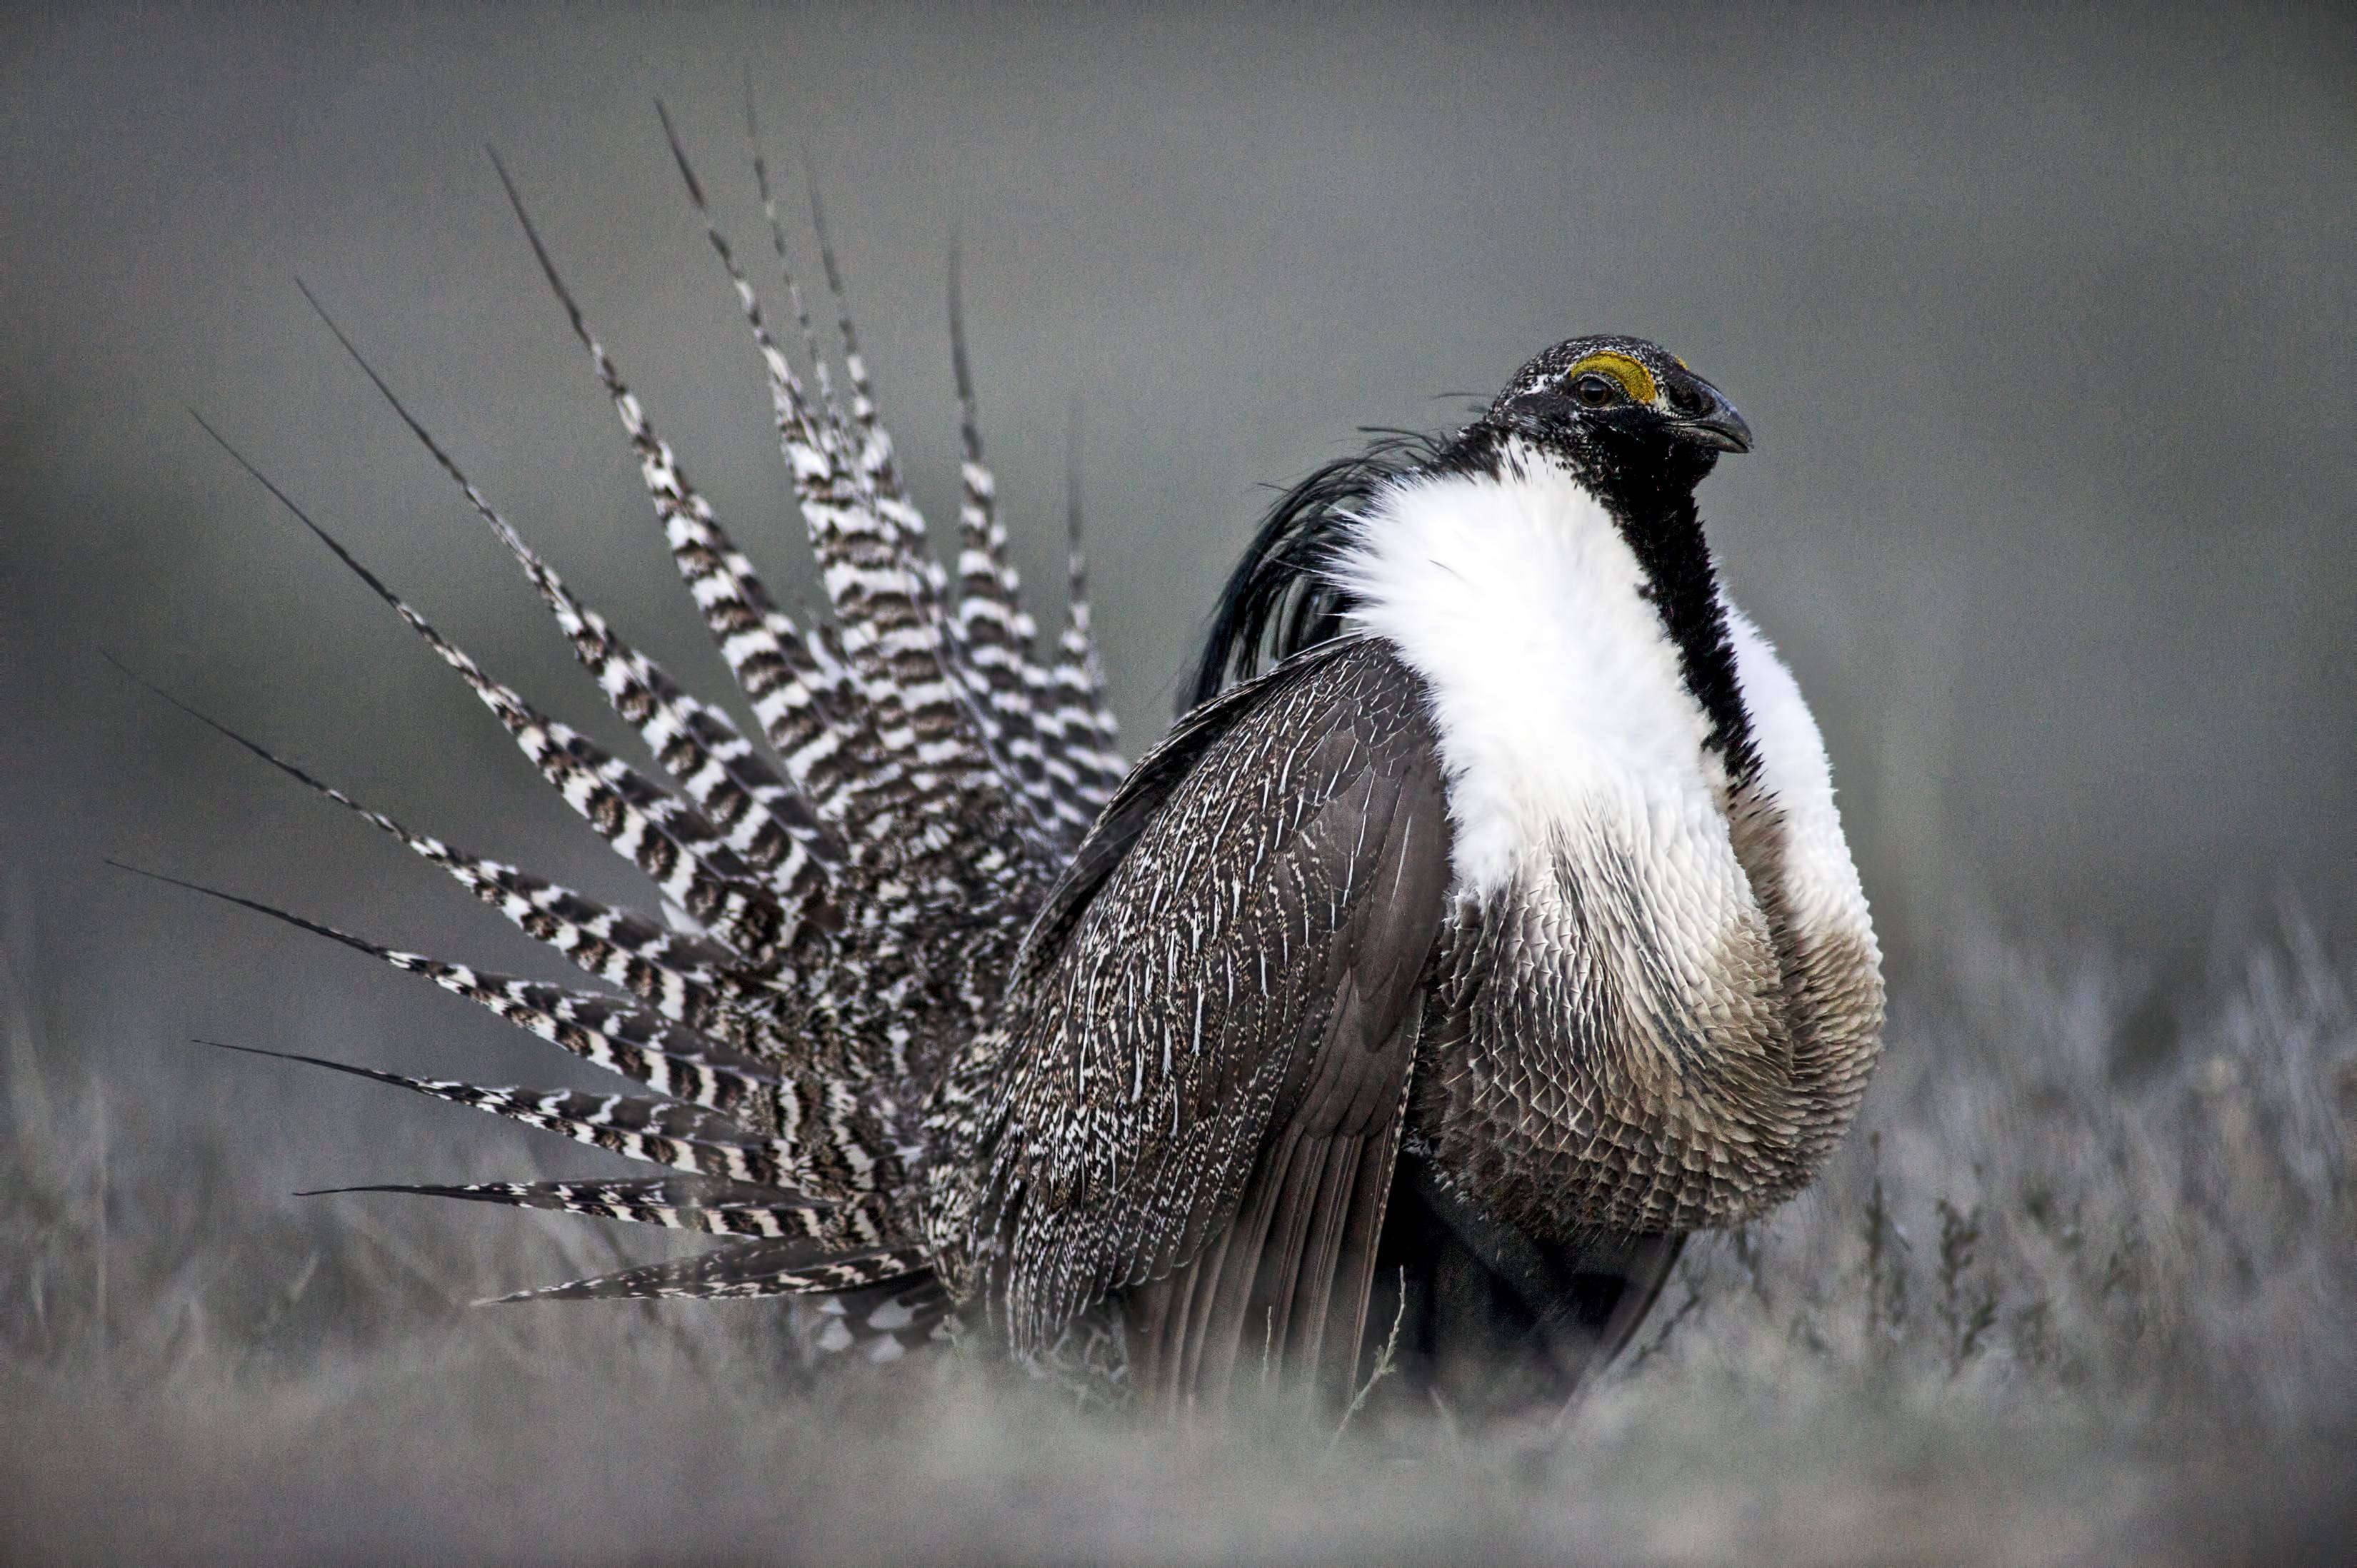 A Gunnison sage grouse with tail feathers fanned near Gunnison, Colo.